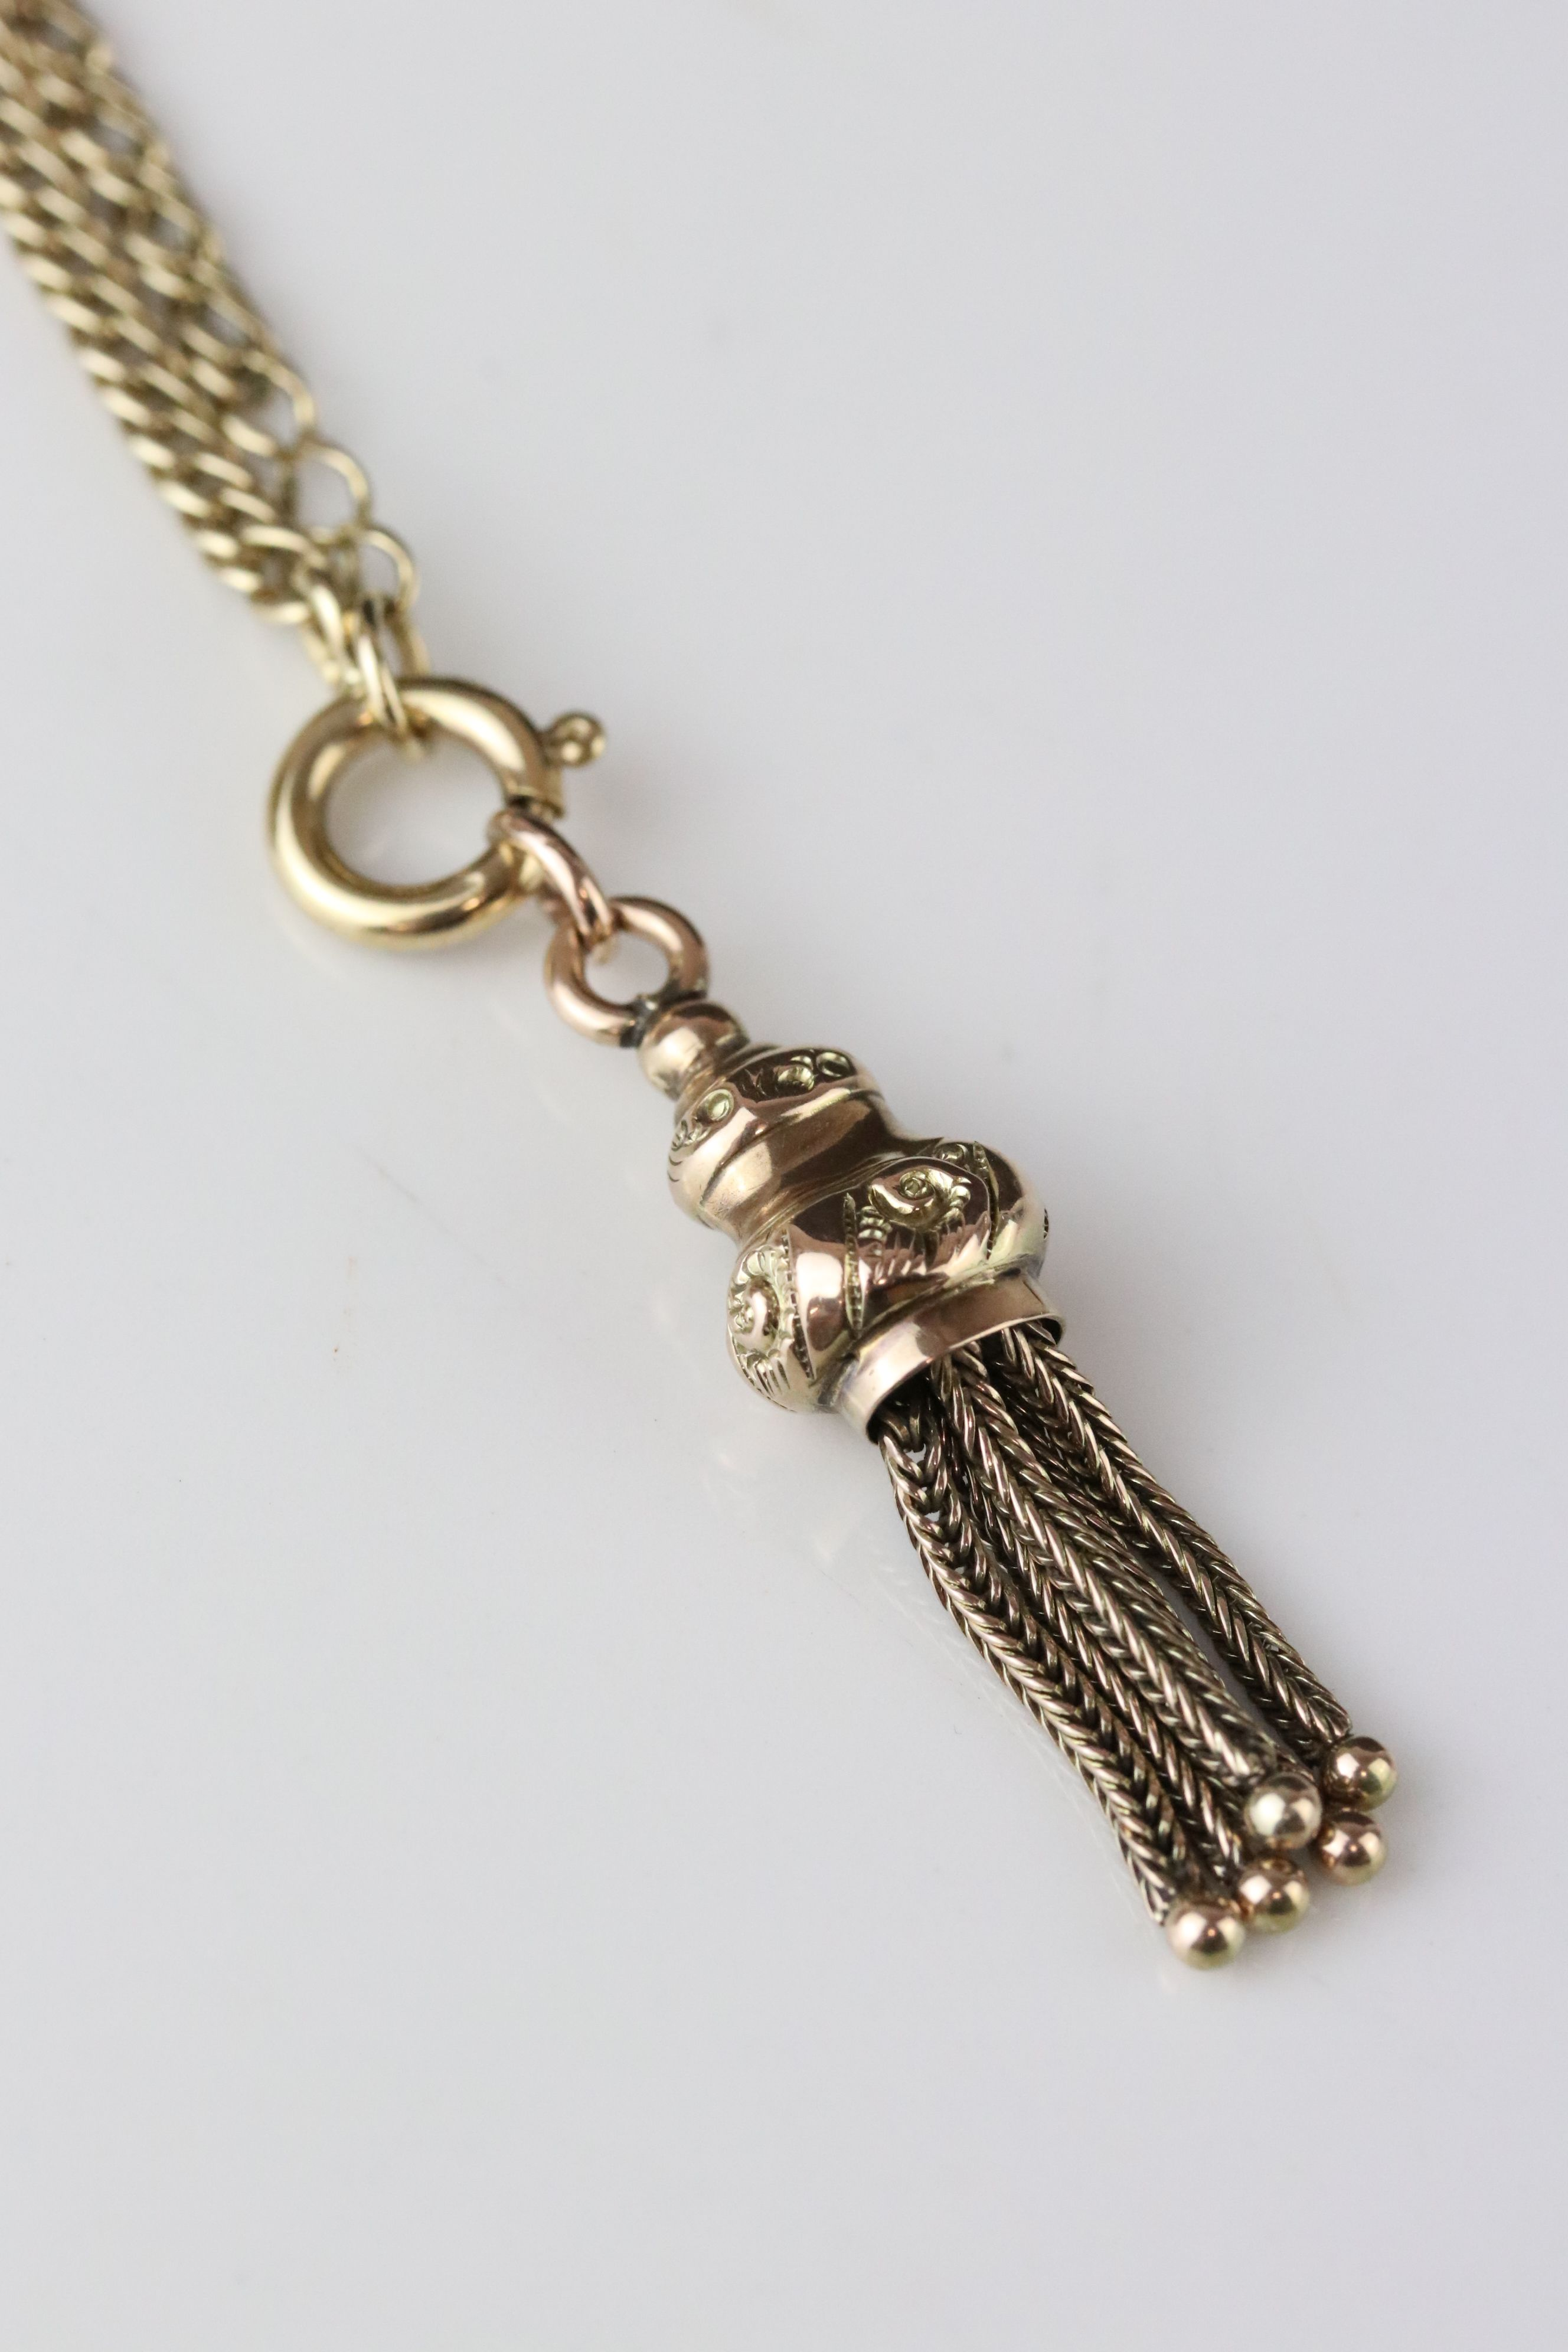 9ct gold chain with earlier tassel fob, length approx 49cm - Image 2 of 4